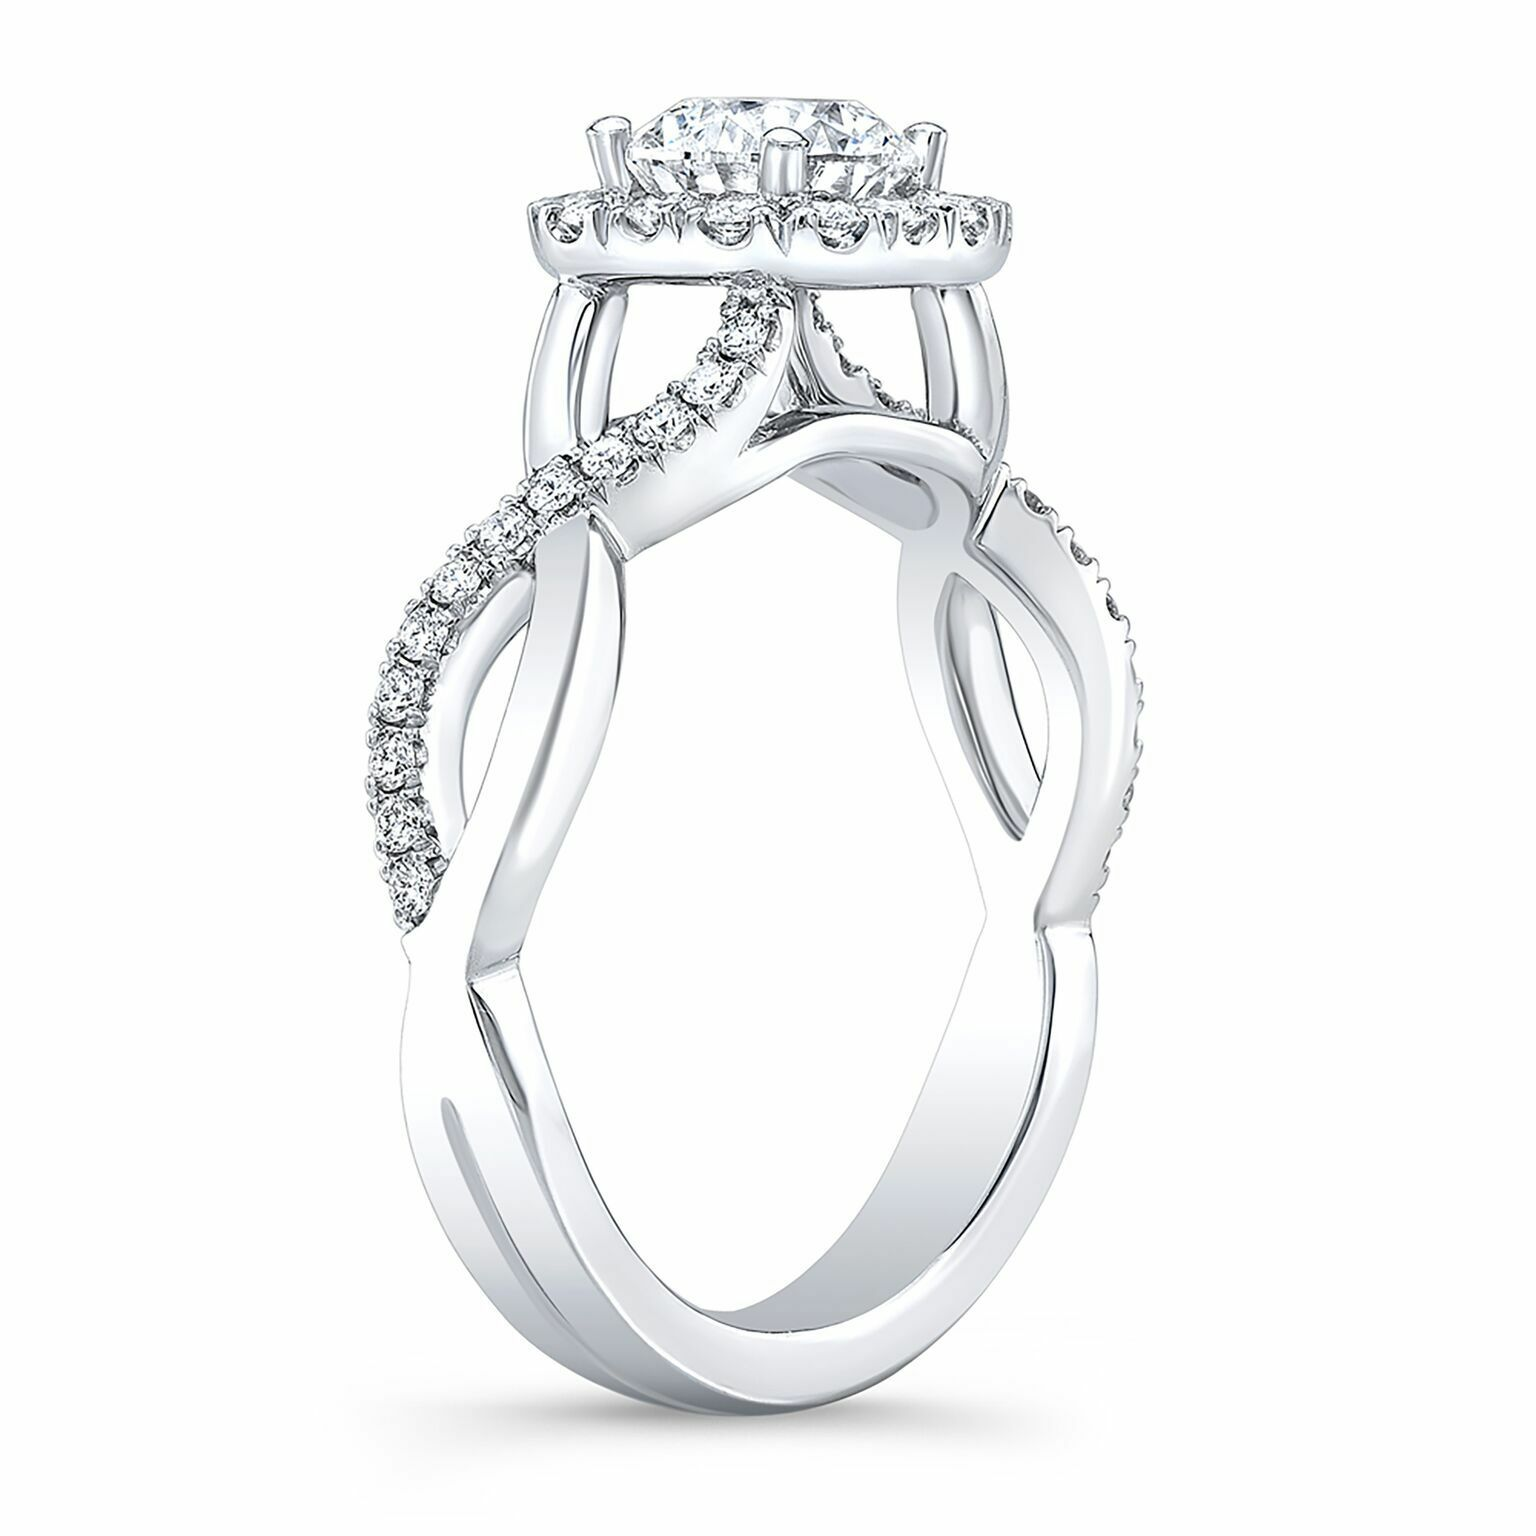 Natural Round Cut Twisted Pave Diamond Engagement Ring - GIA Certified 1